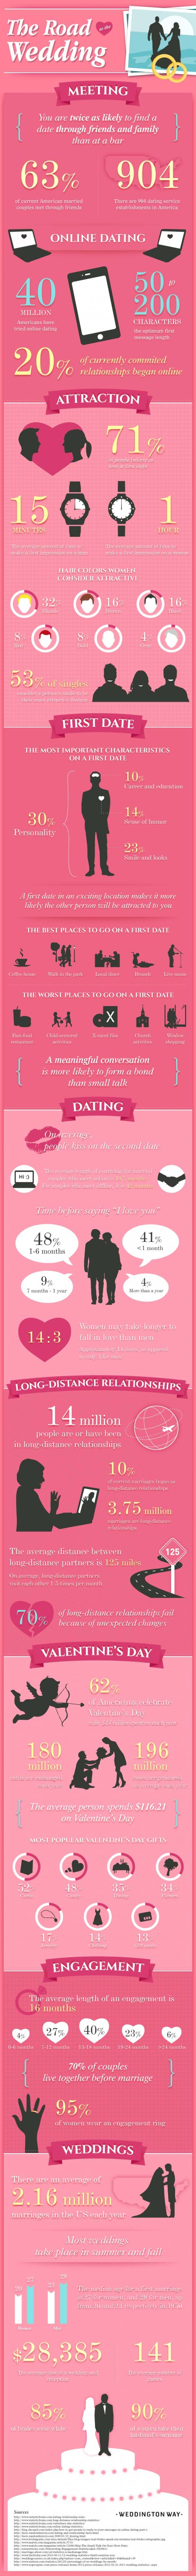 Average number of lovers for americans -  Infographic Go Wedding 2 16 Million Weddings Are Recorded On Average In The Us